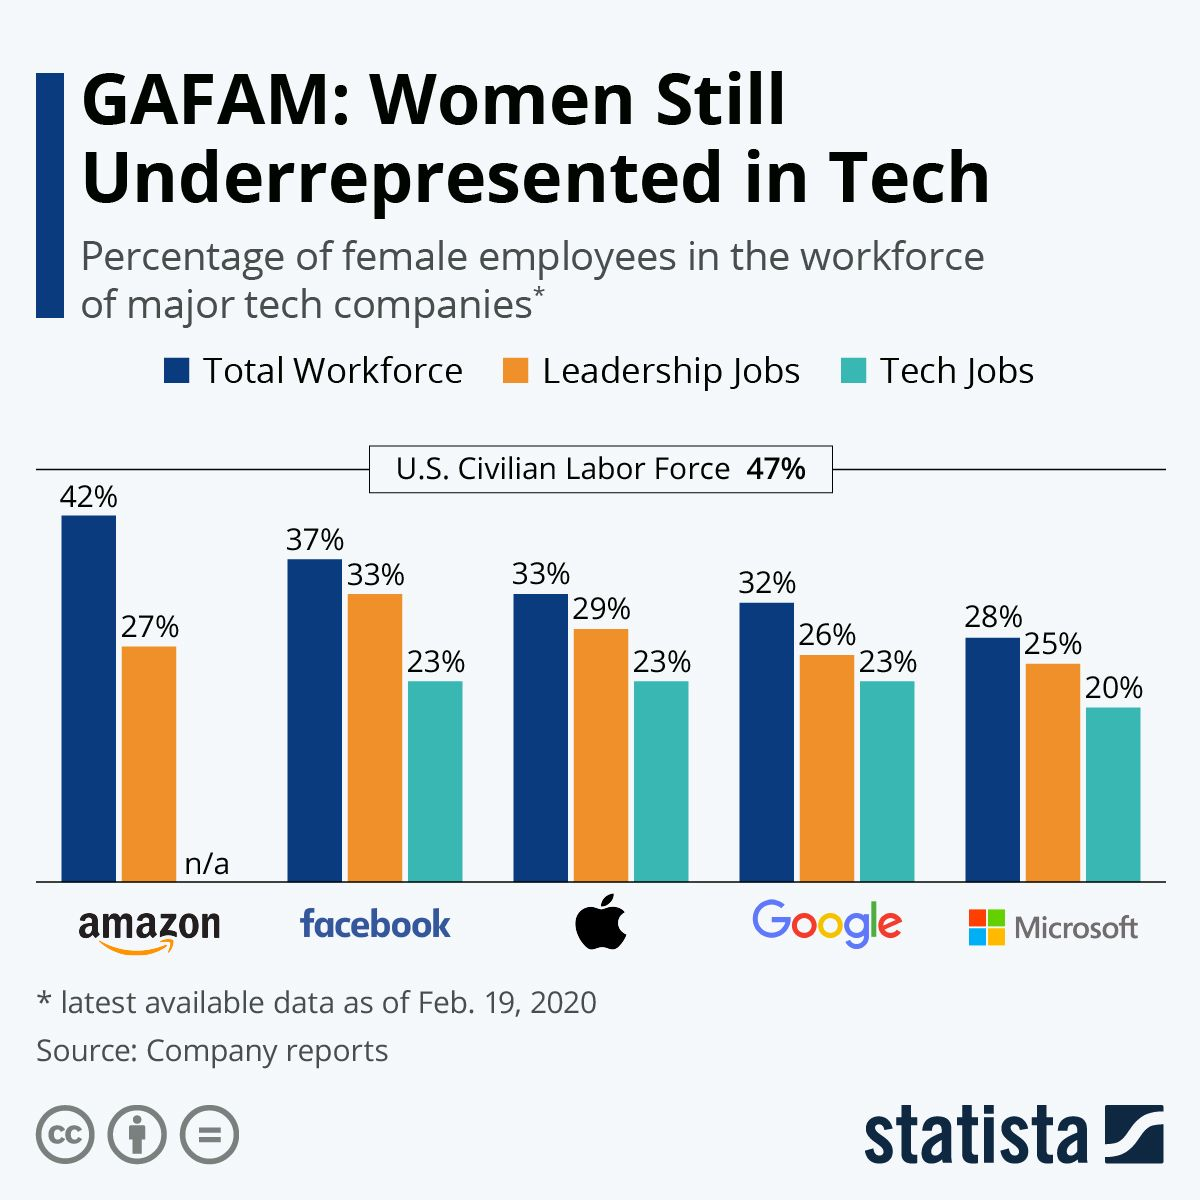 GAFAM Women Still Underrepresented in Tech in 2020